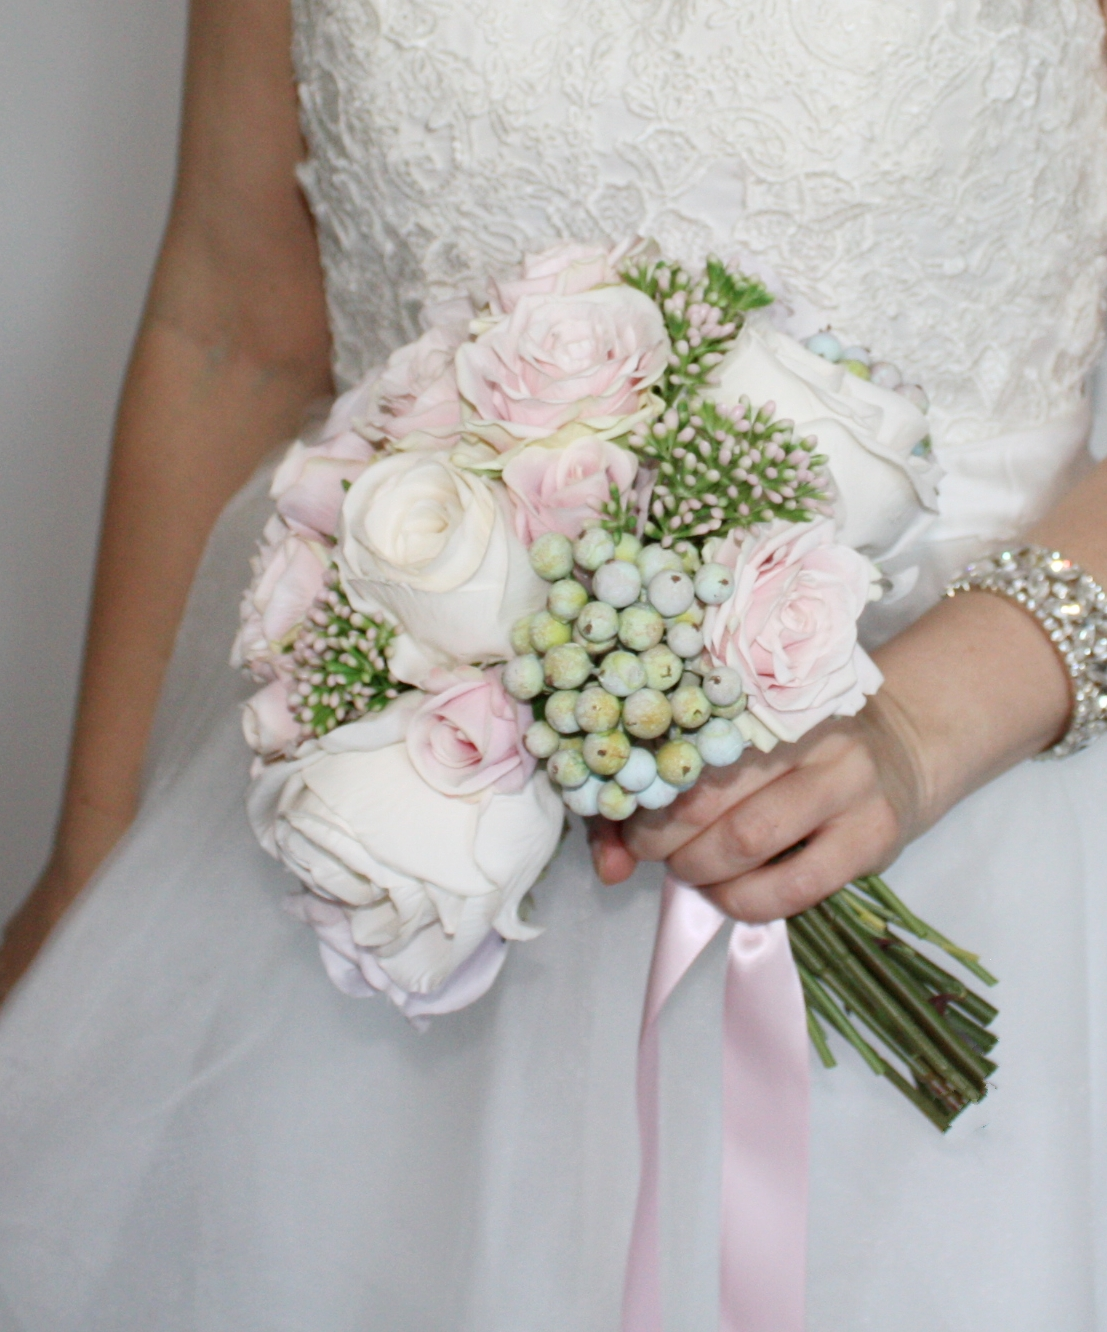 Rachel's Rose & Berry Bouquet